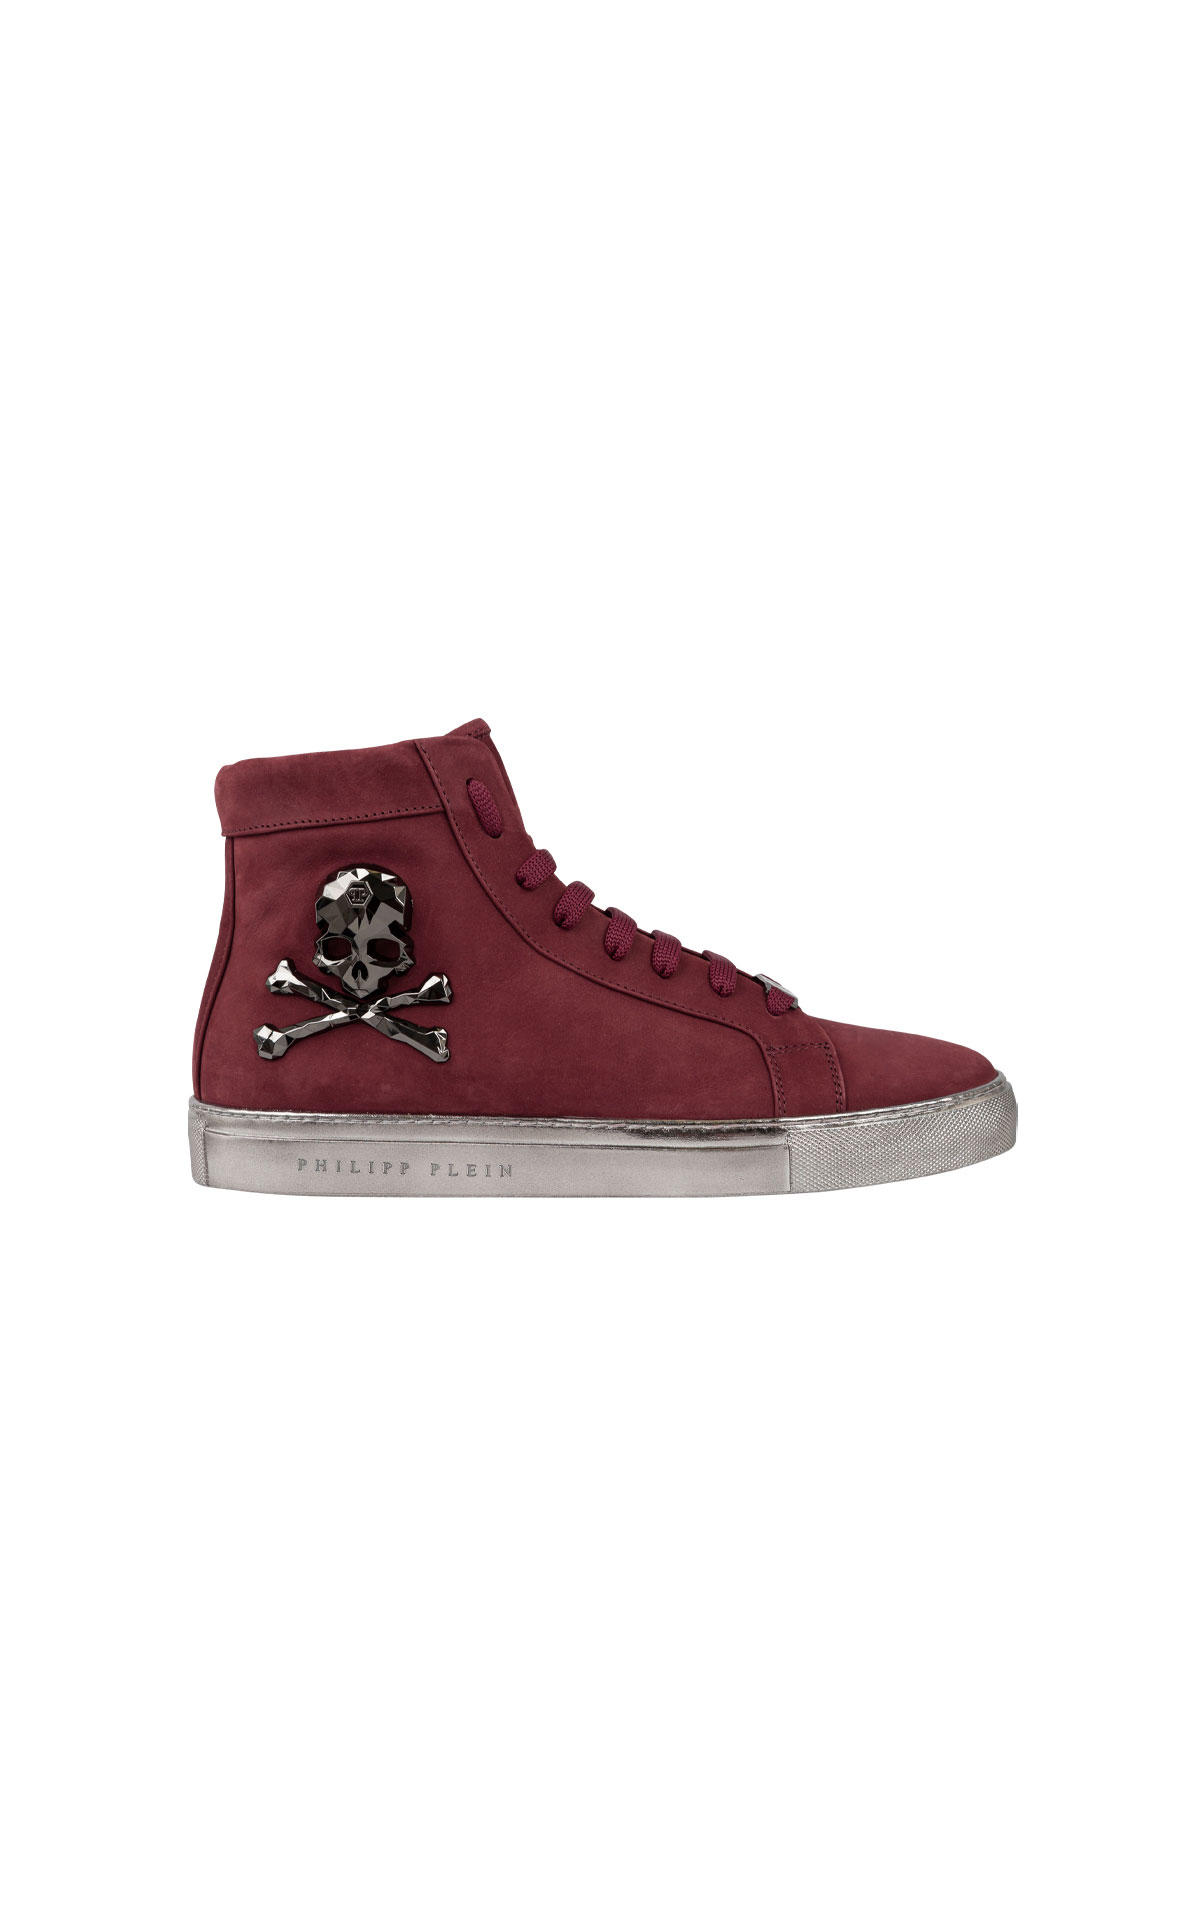 Philipp Plein Sneaker High Top red